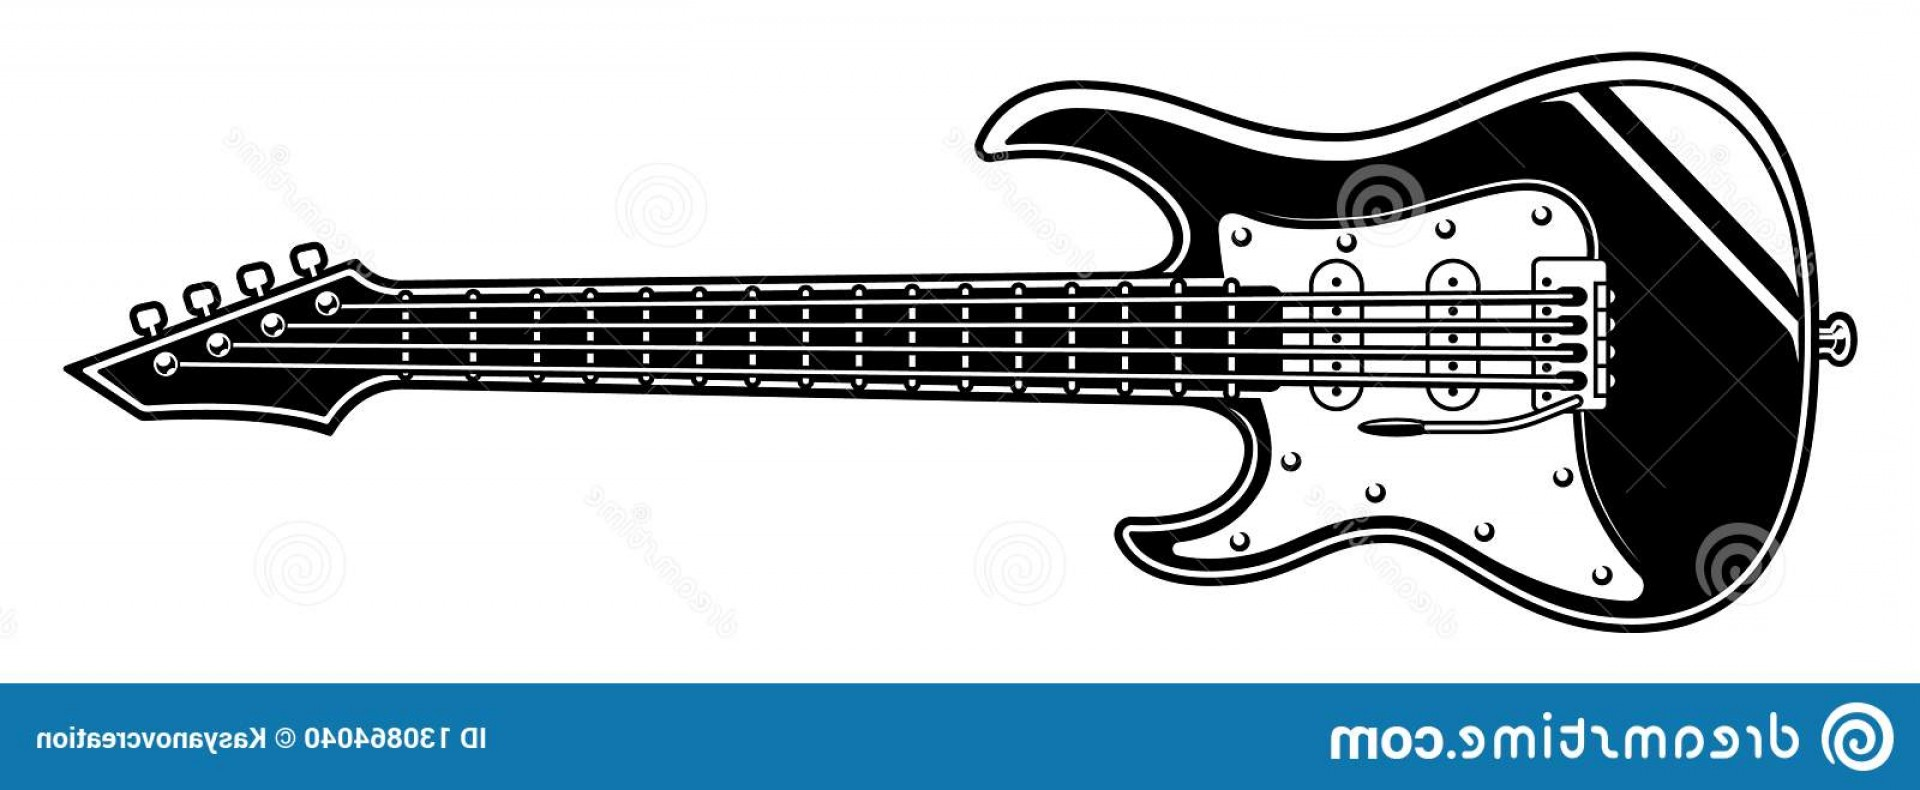 Vector Guitar Clip Art Black And White: Black White Illustration Electric Guitar Background Image